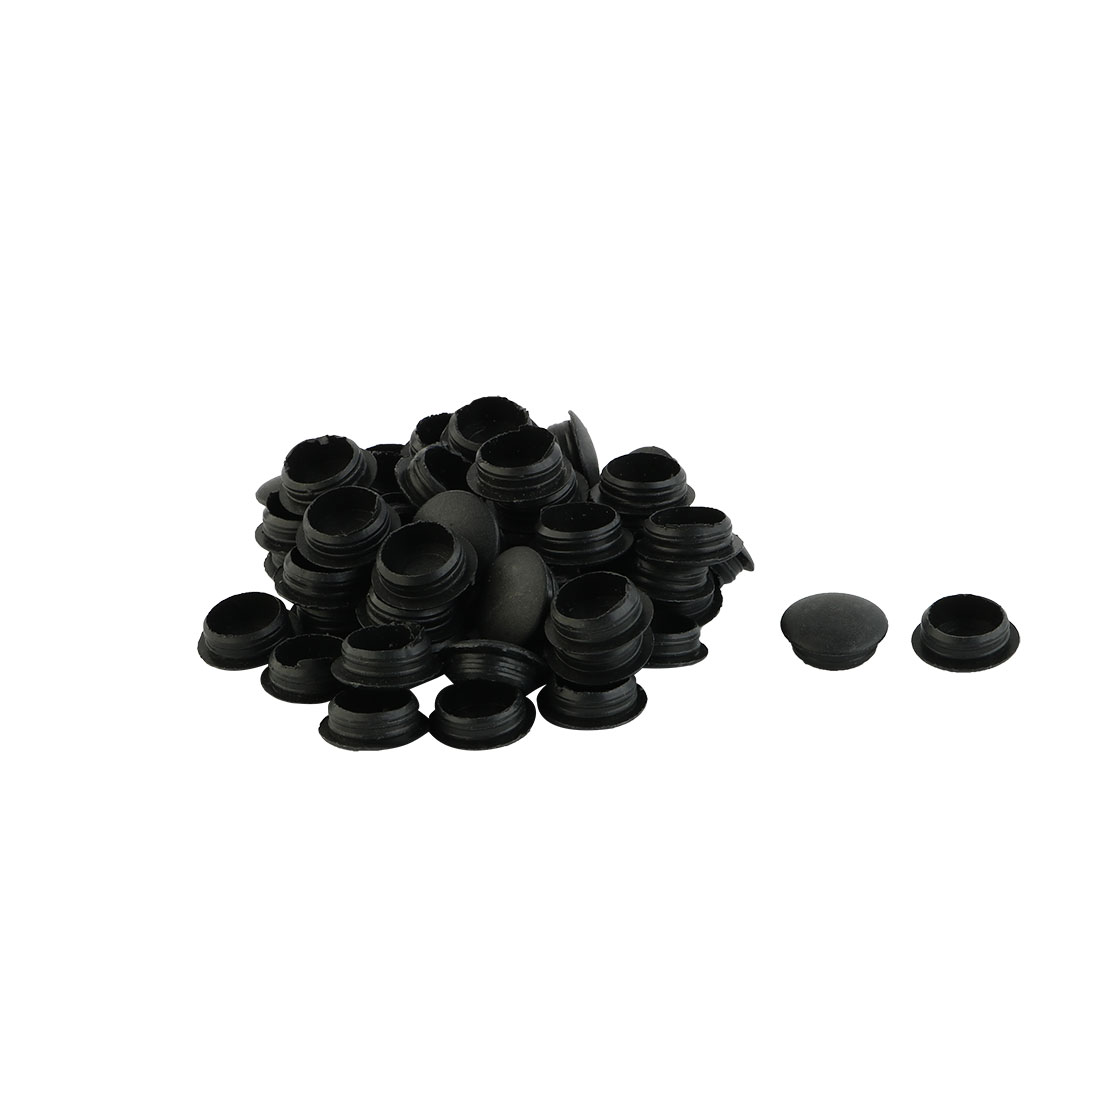 Plastic Flush Type Locking Hole Cap Covers Bung Tube Insert Black 12mm Dia 50pcs